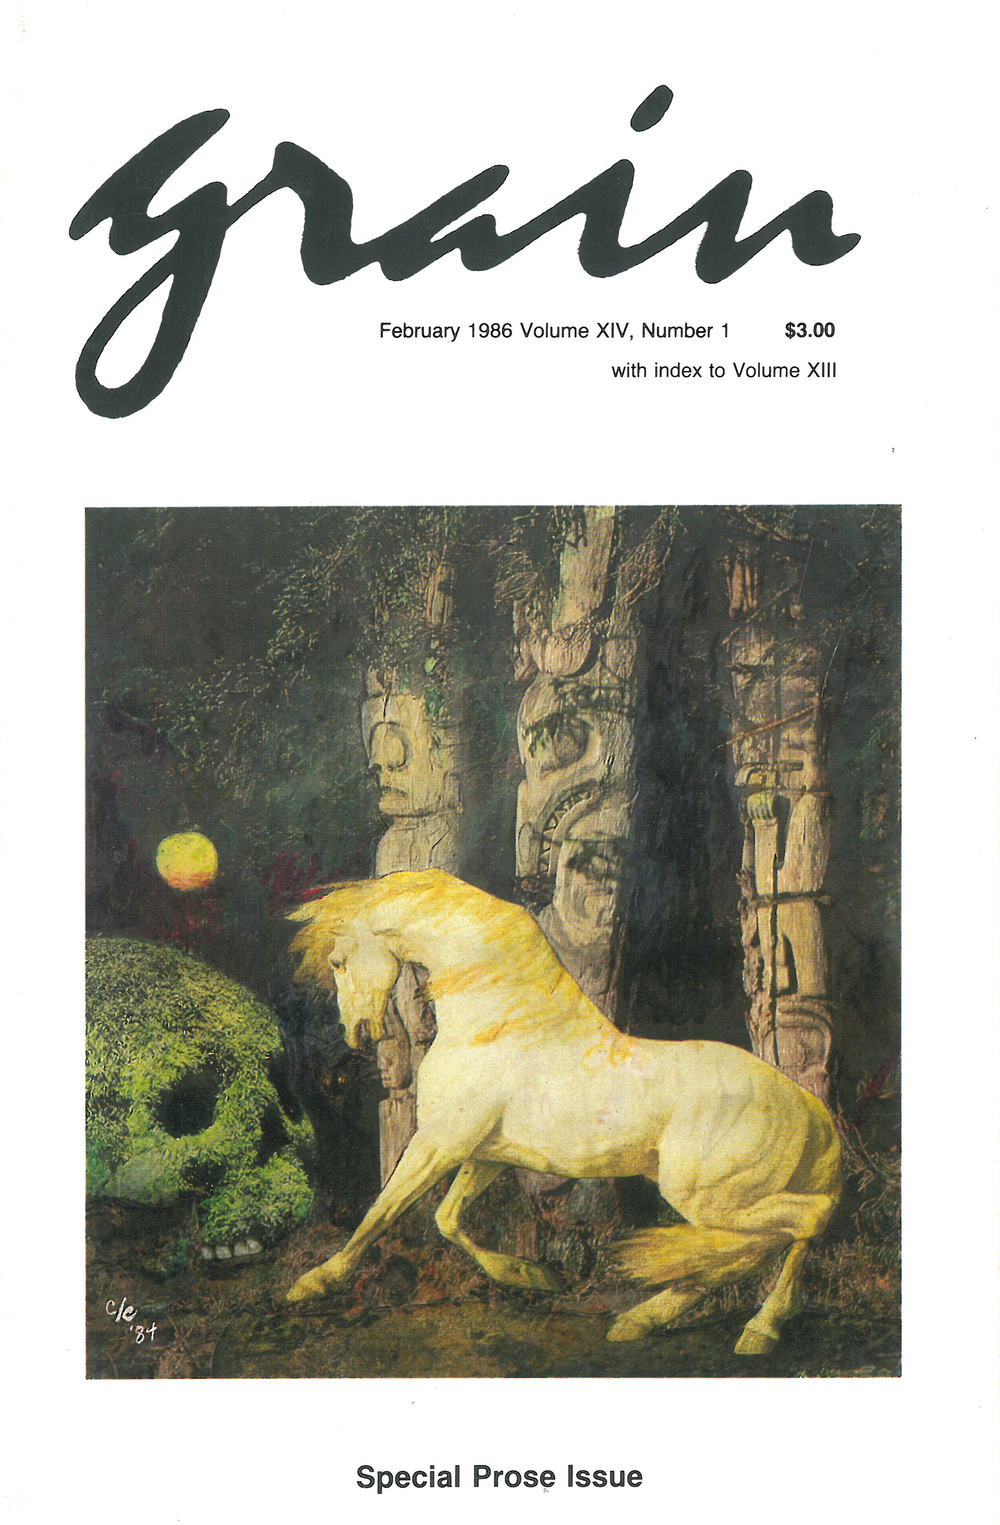 14.1 February 1986, Special Prose Issue